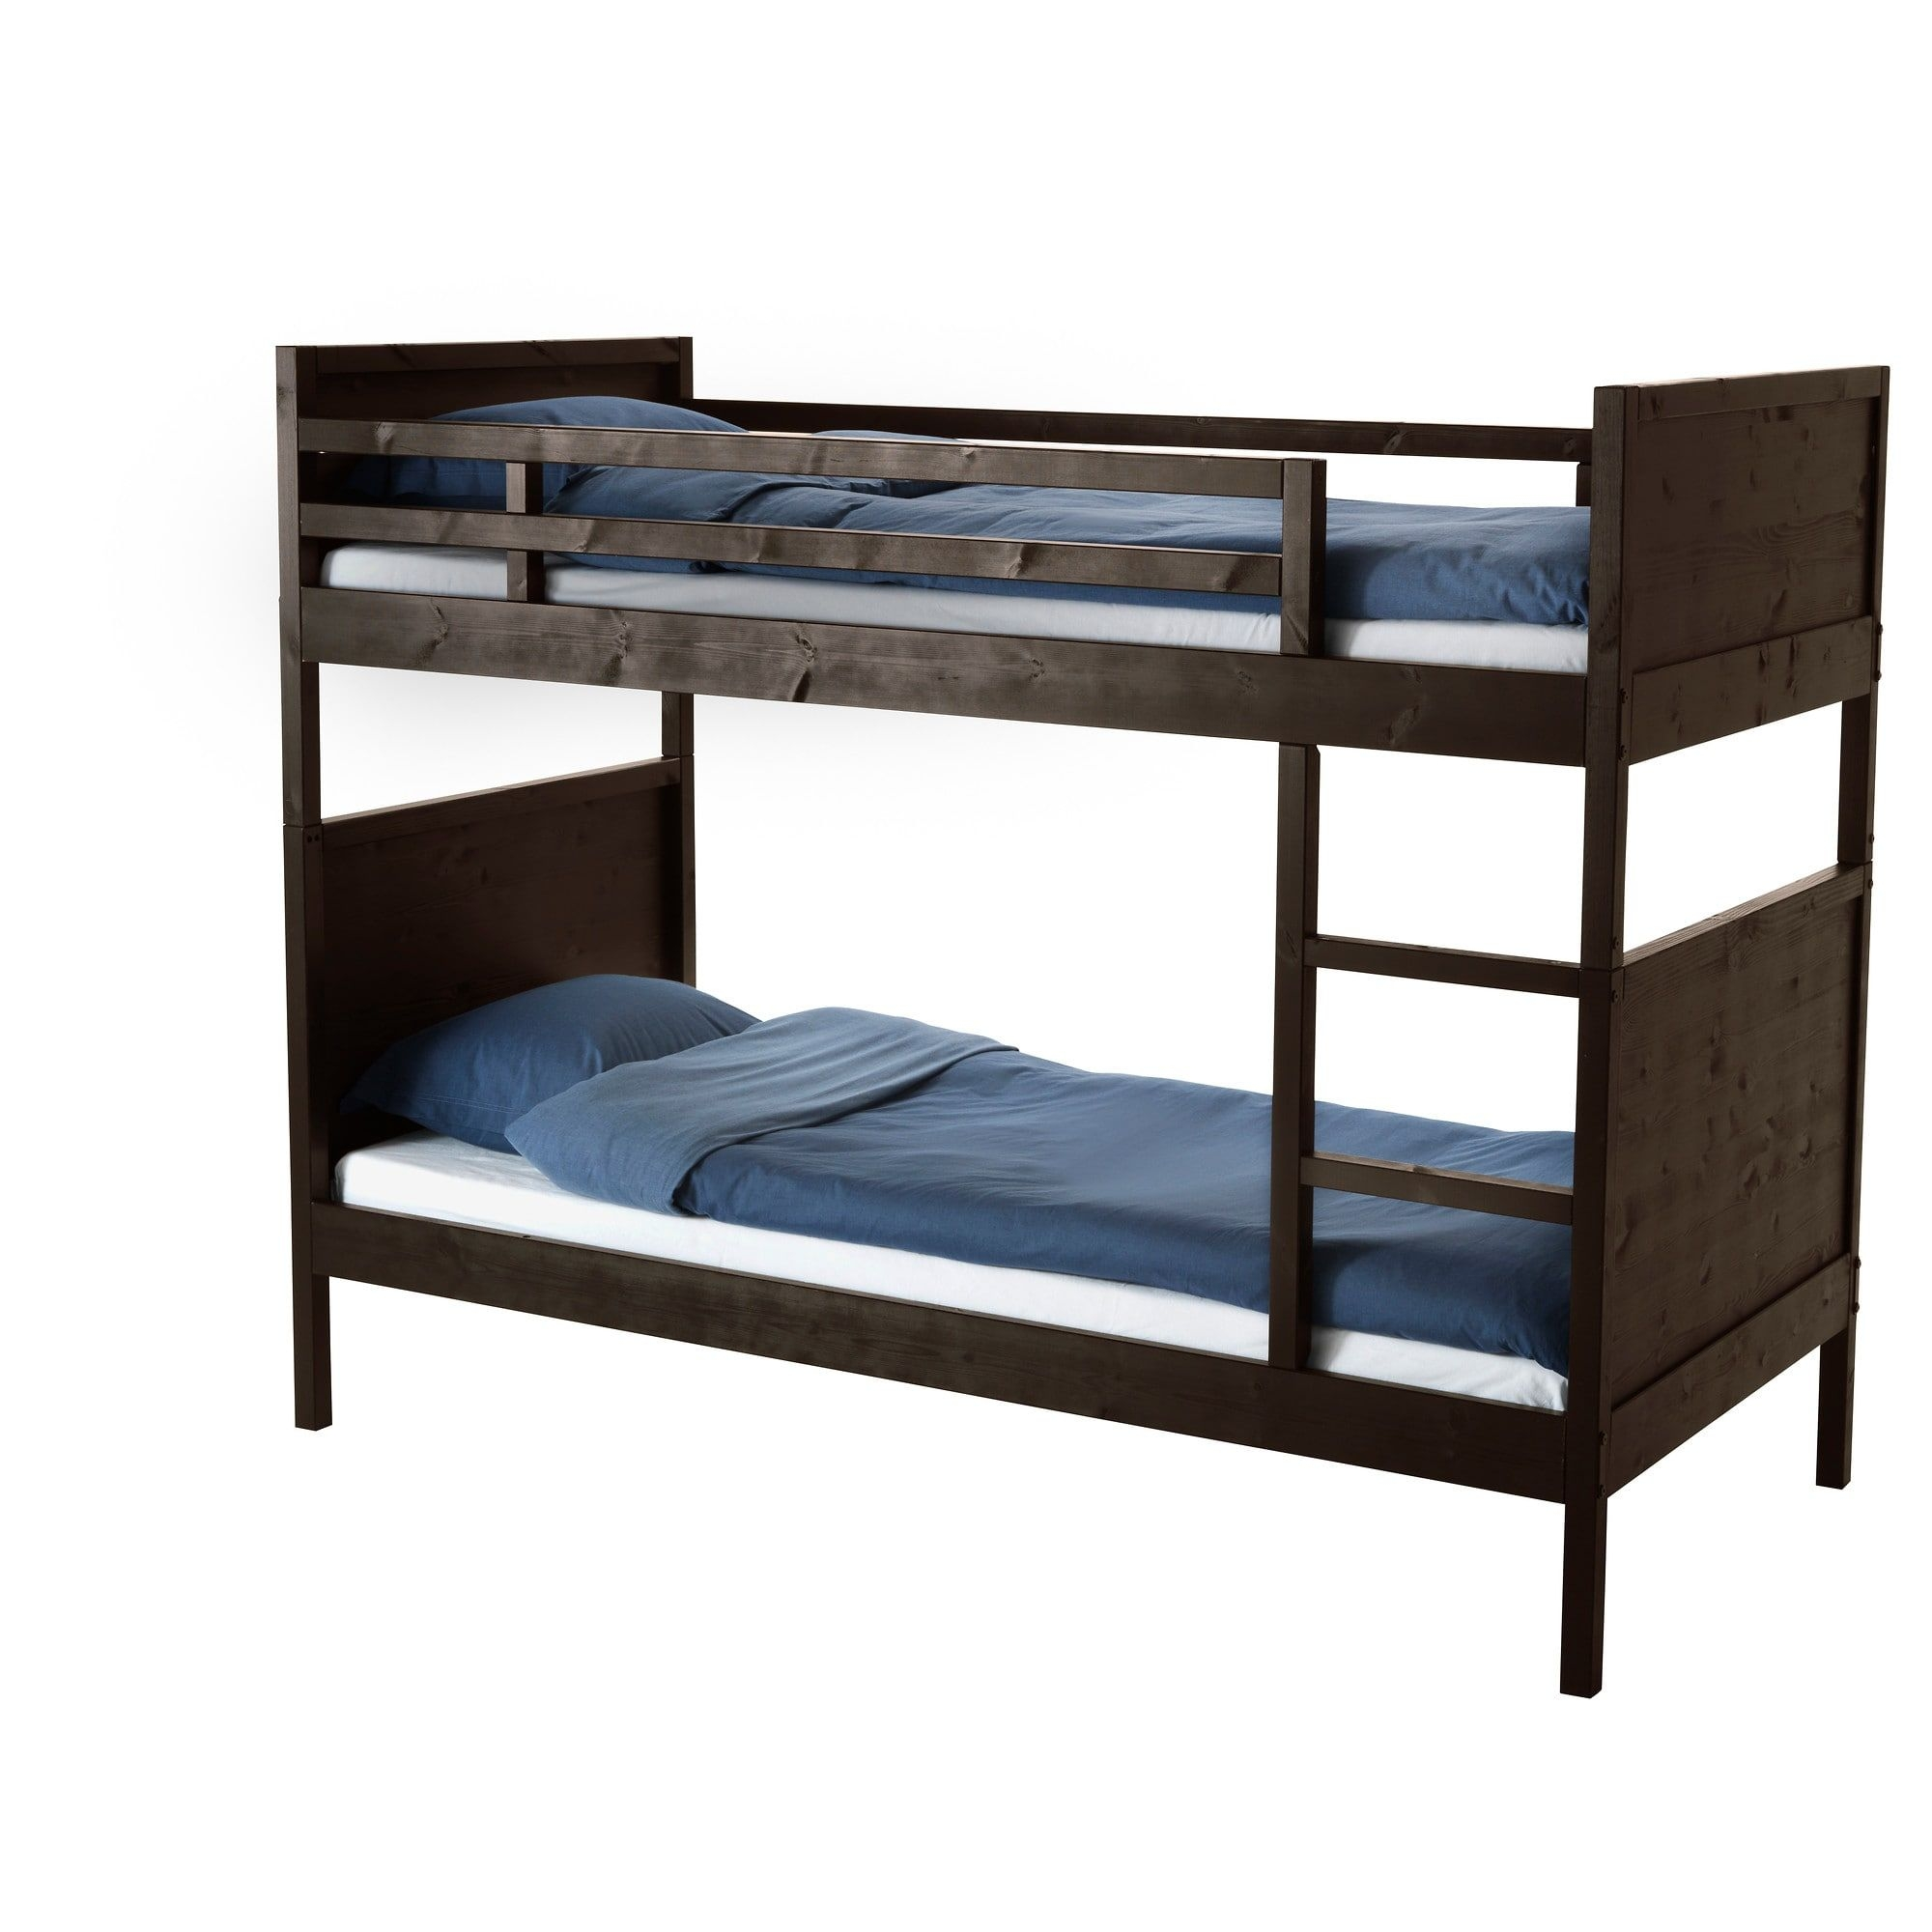 Ikea Bunk Beds You Ll Love In 2021 Visualhunt